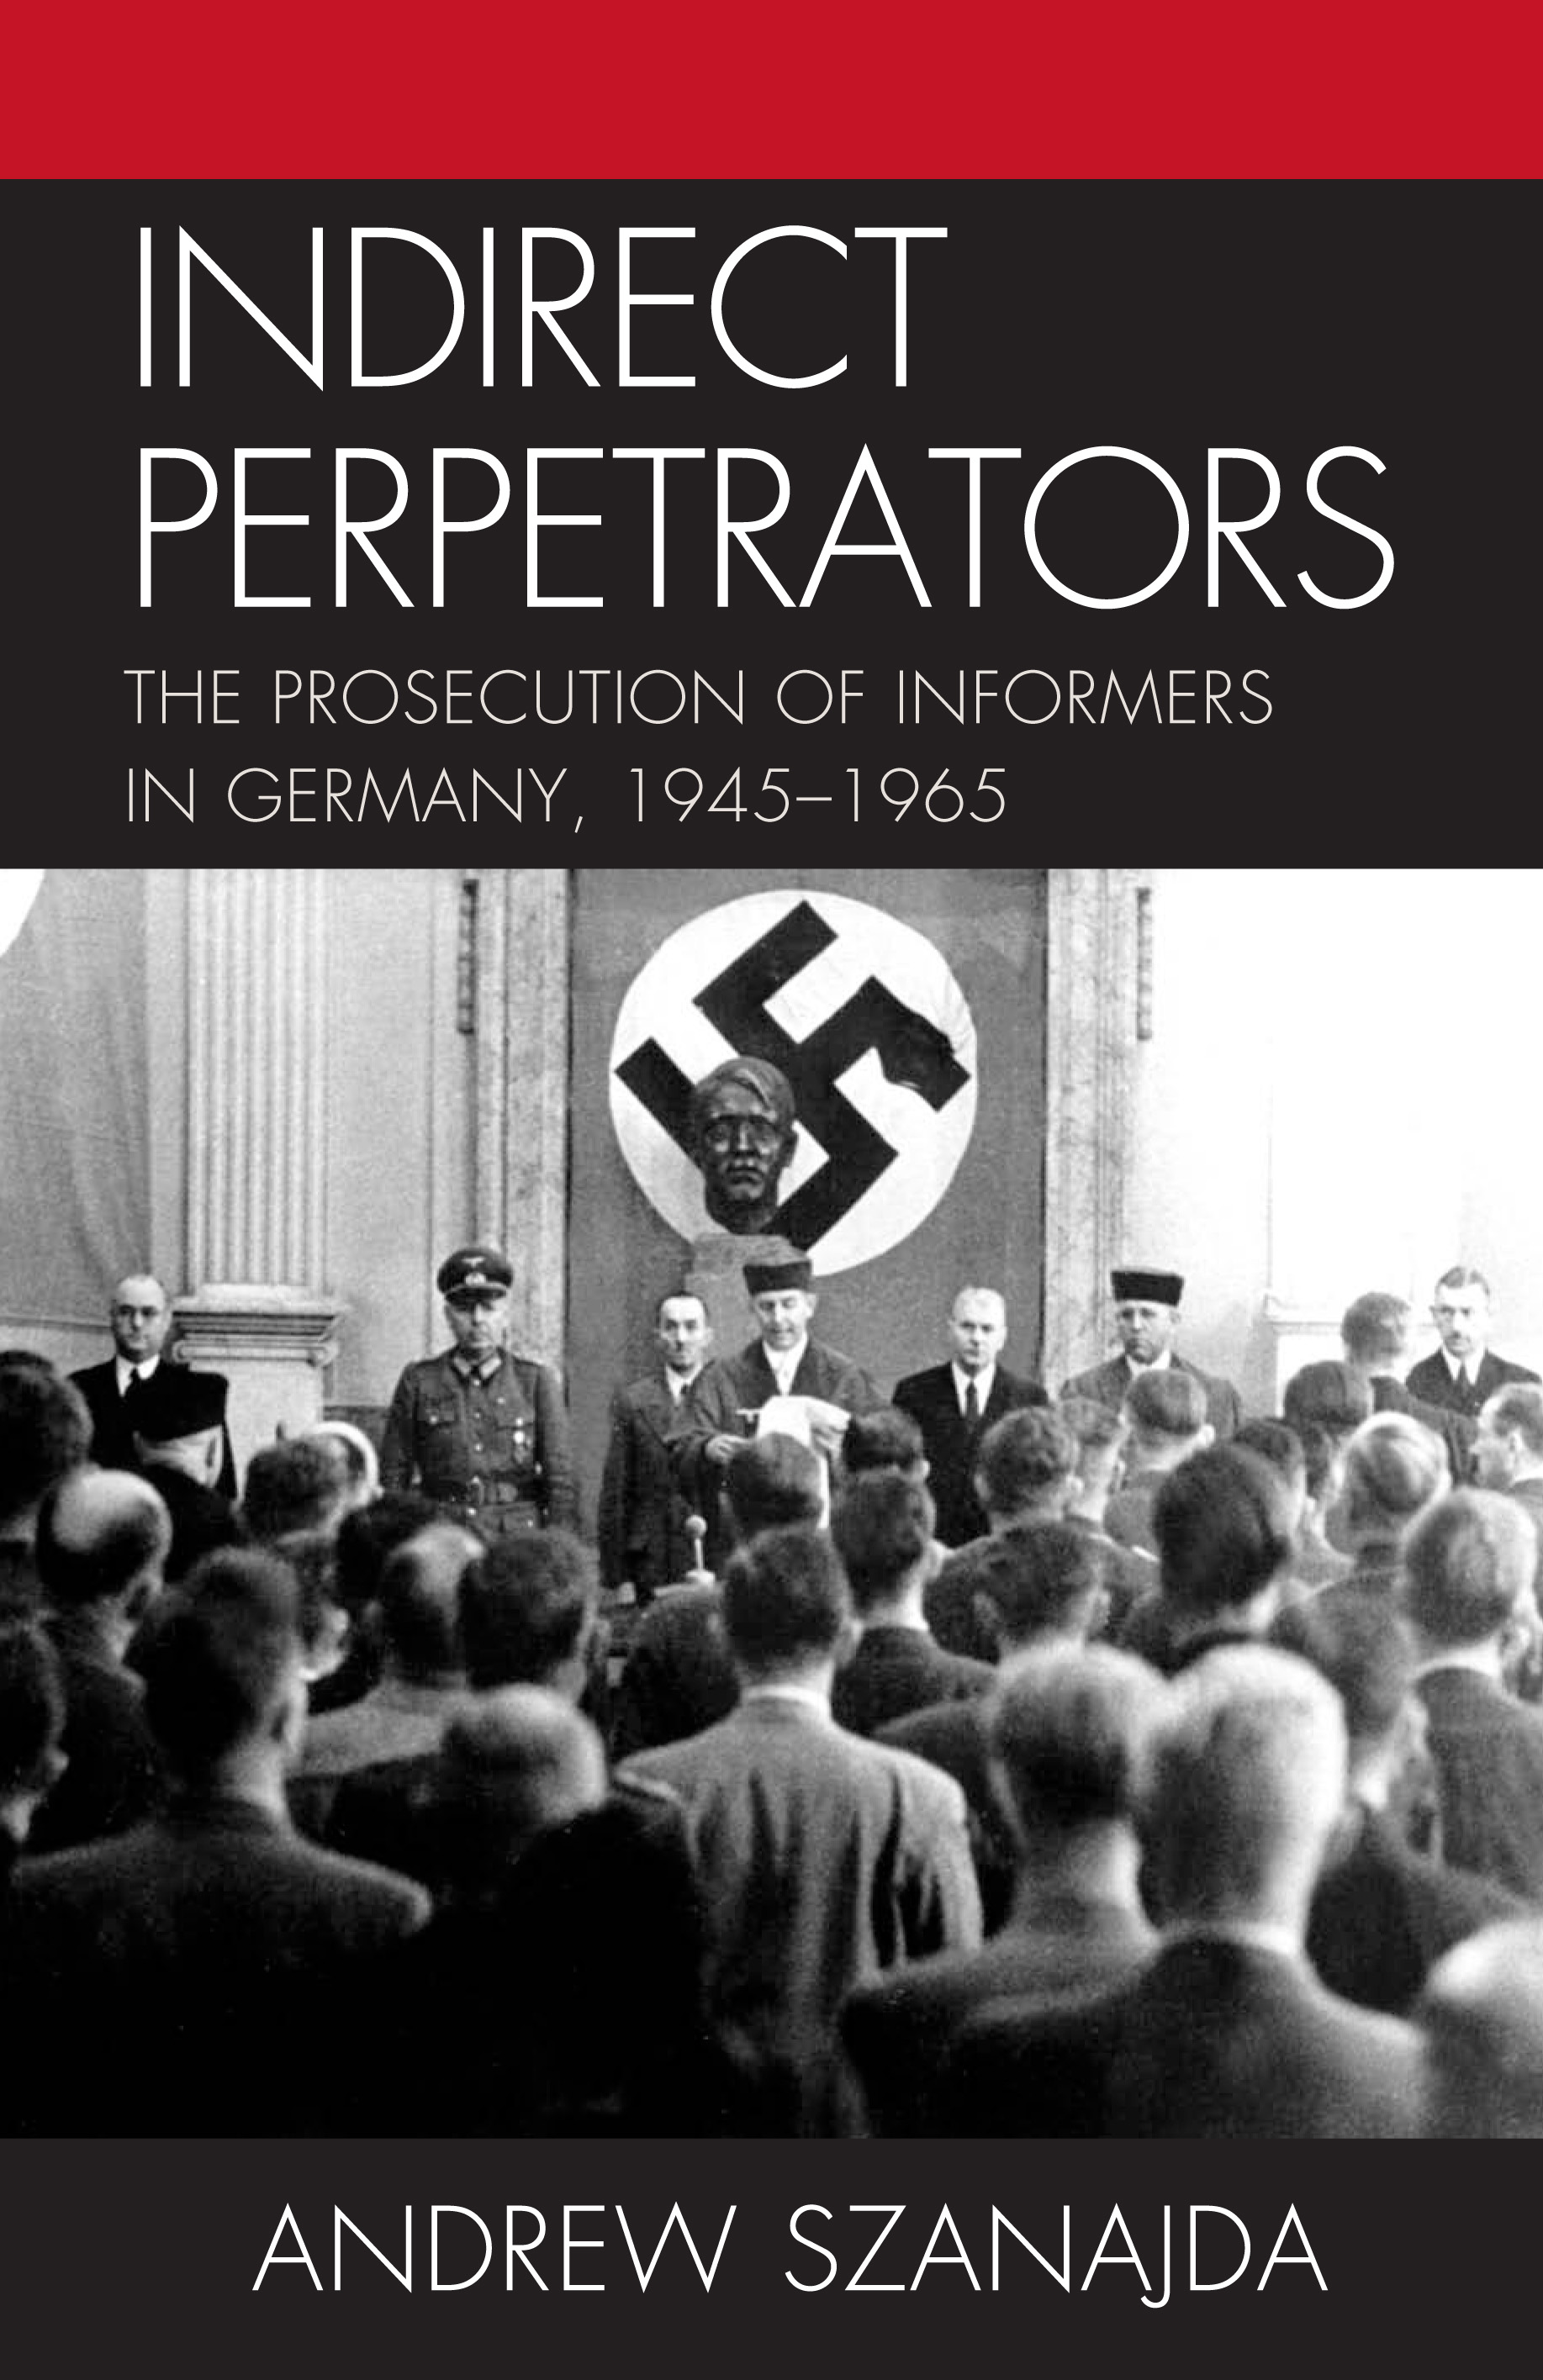 Indirect Perpetrators